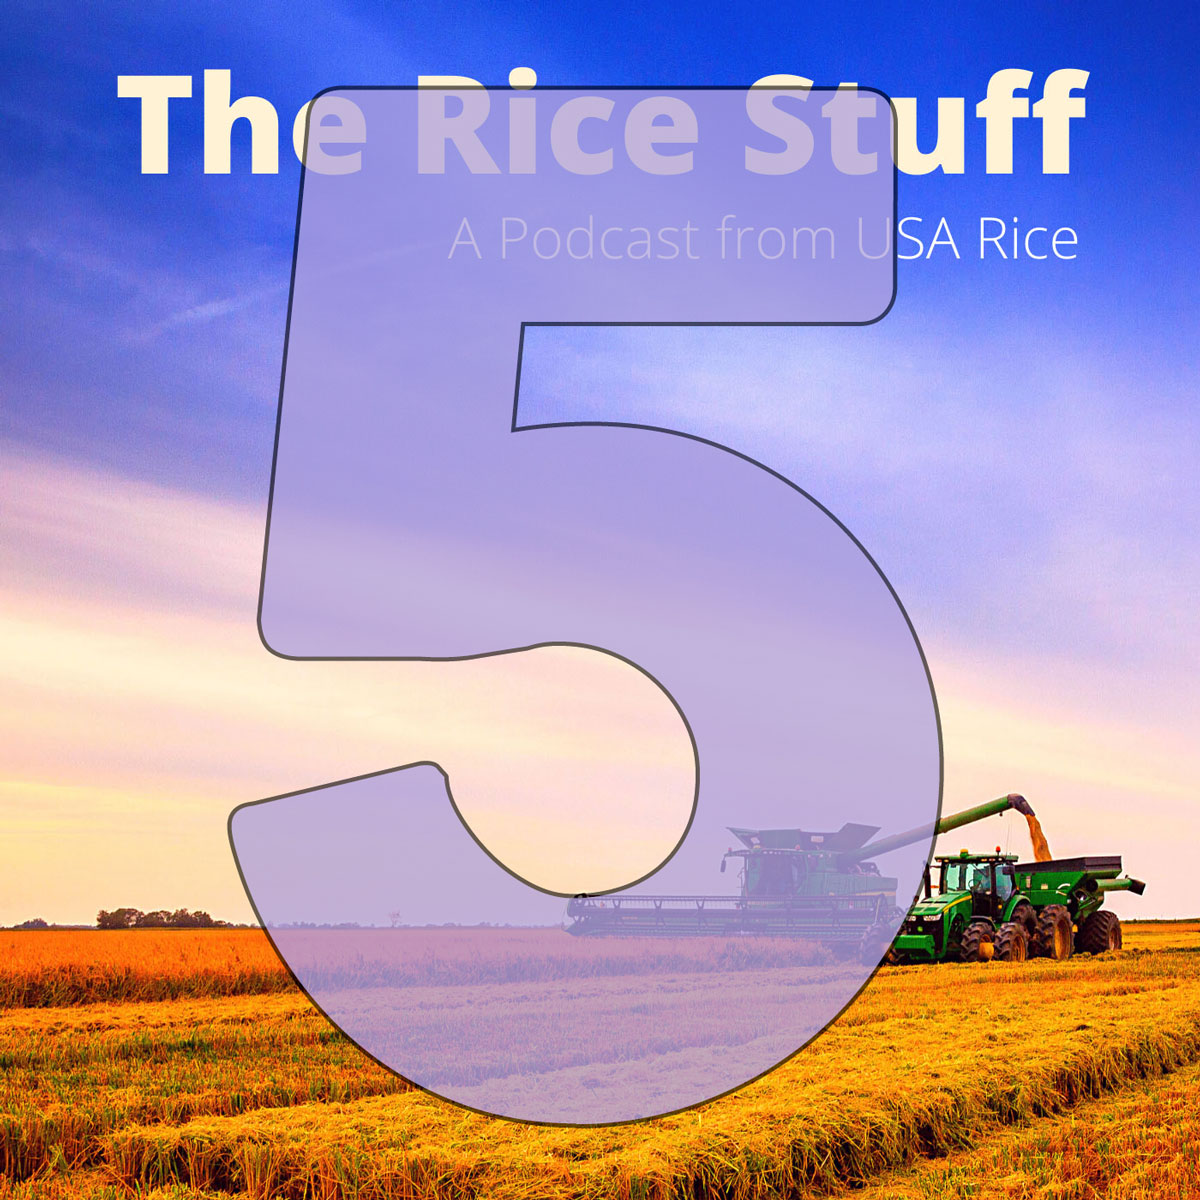 Number 5 superimposed over photo of combine and grain cart in mature rice field